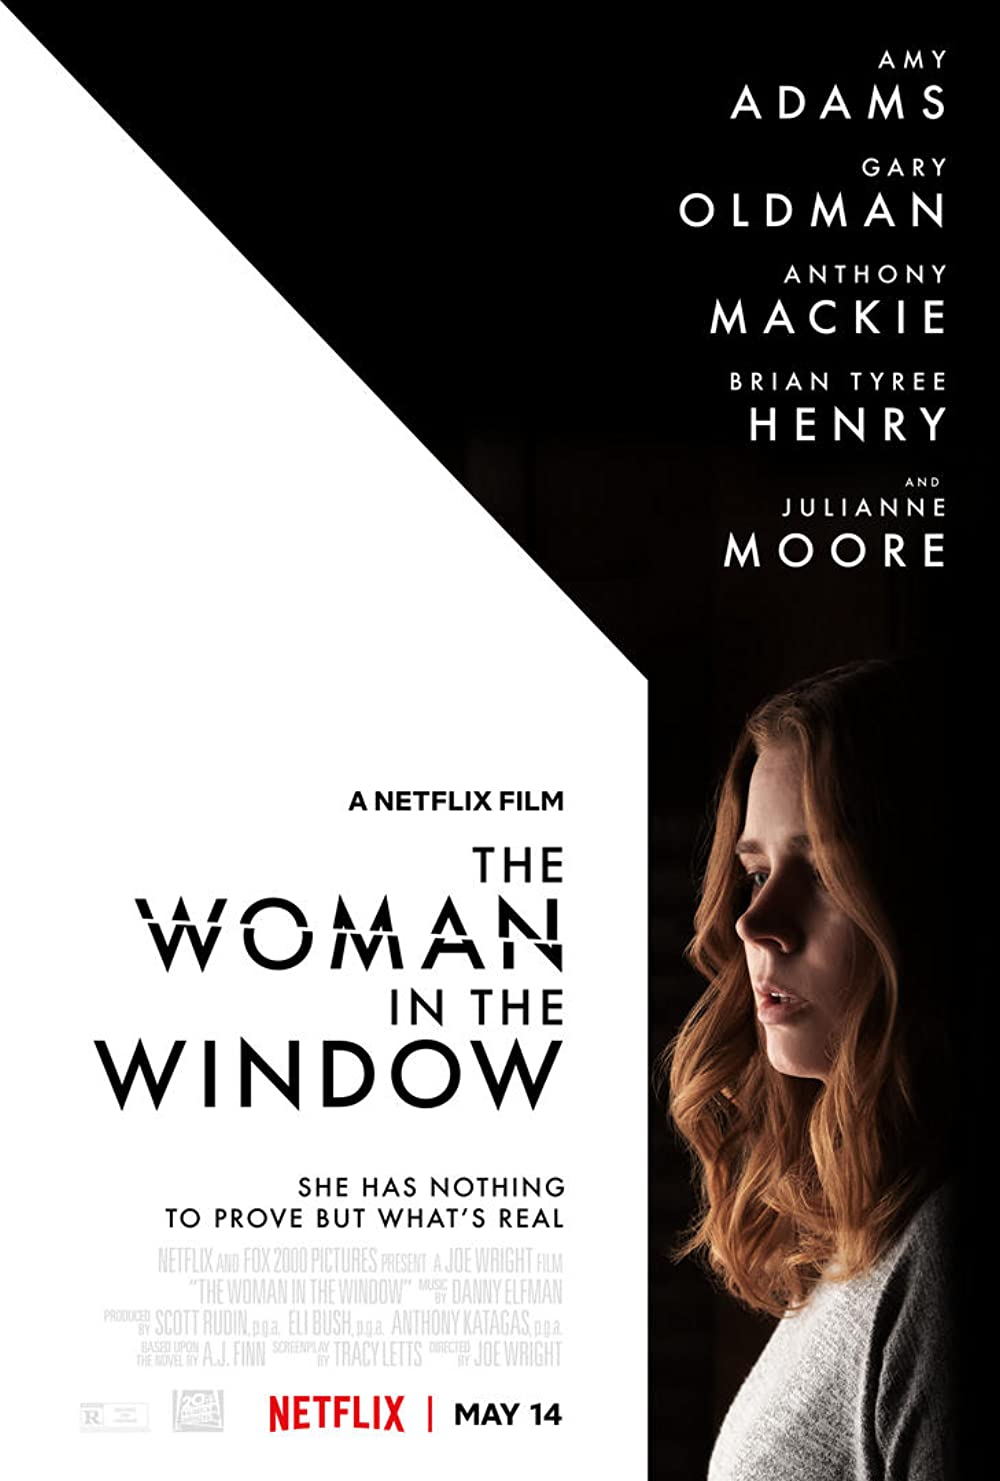 The Woman in the Window 2021 Hindi ORG Dual Audio 1080p NF HDRip MSubs 1.45GB Download